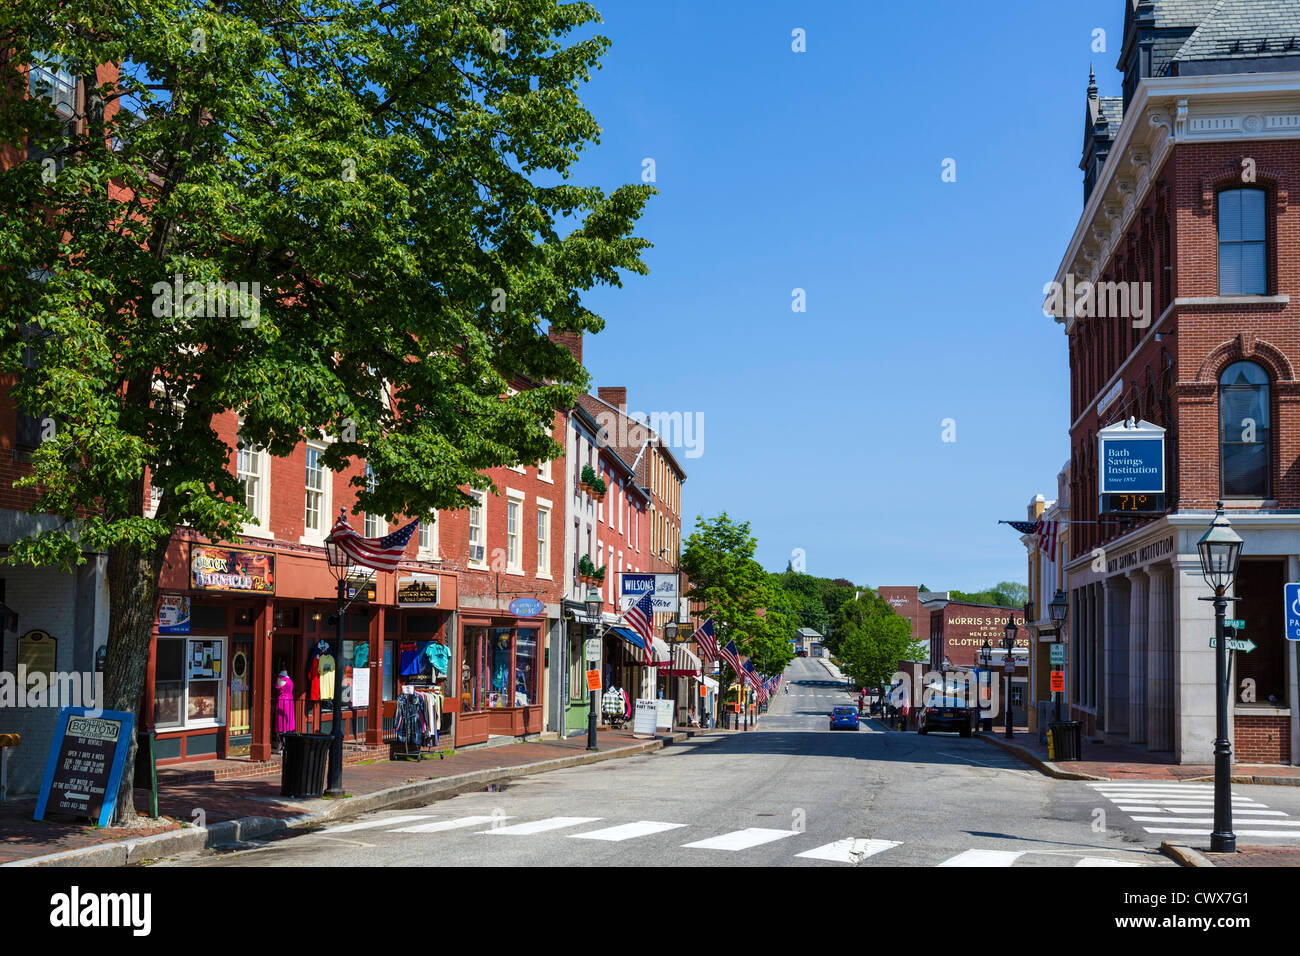 View down Front Street in the historic town of Bath, Maine, USA - Stock Image